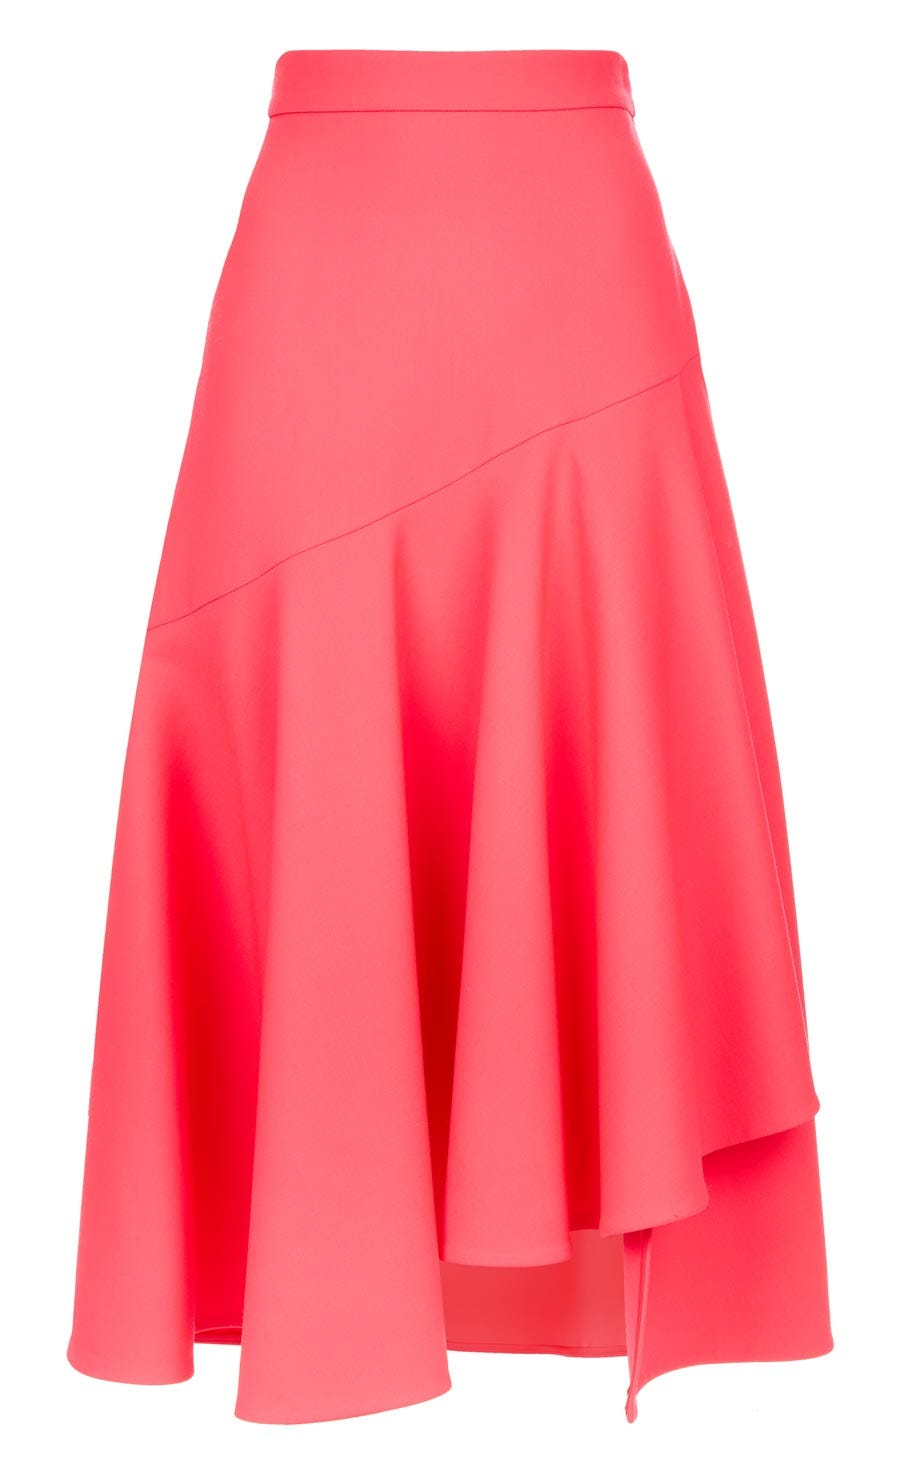 Mercury Plain Ruffle Skirt, Flamingo